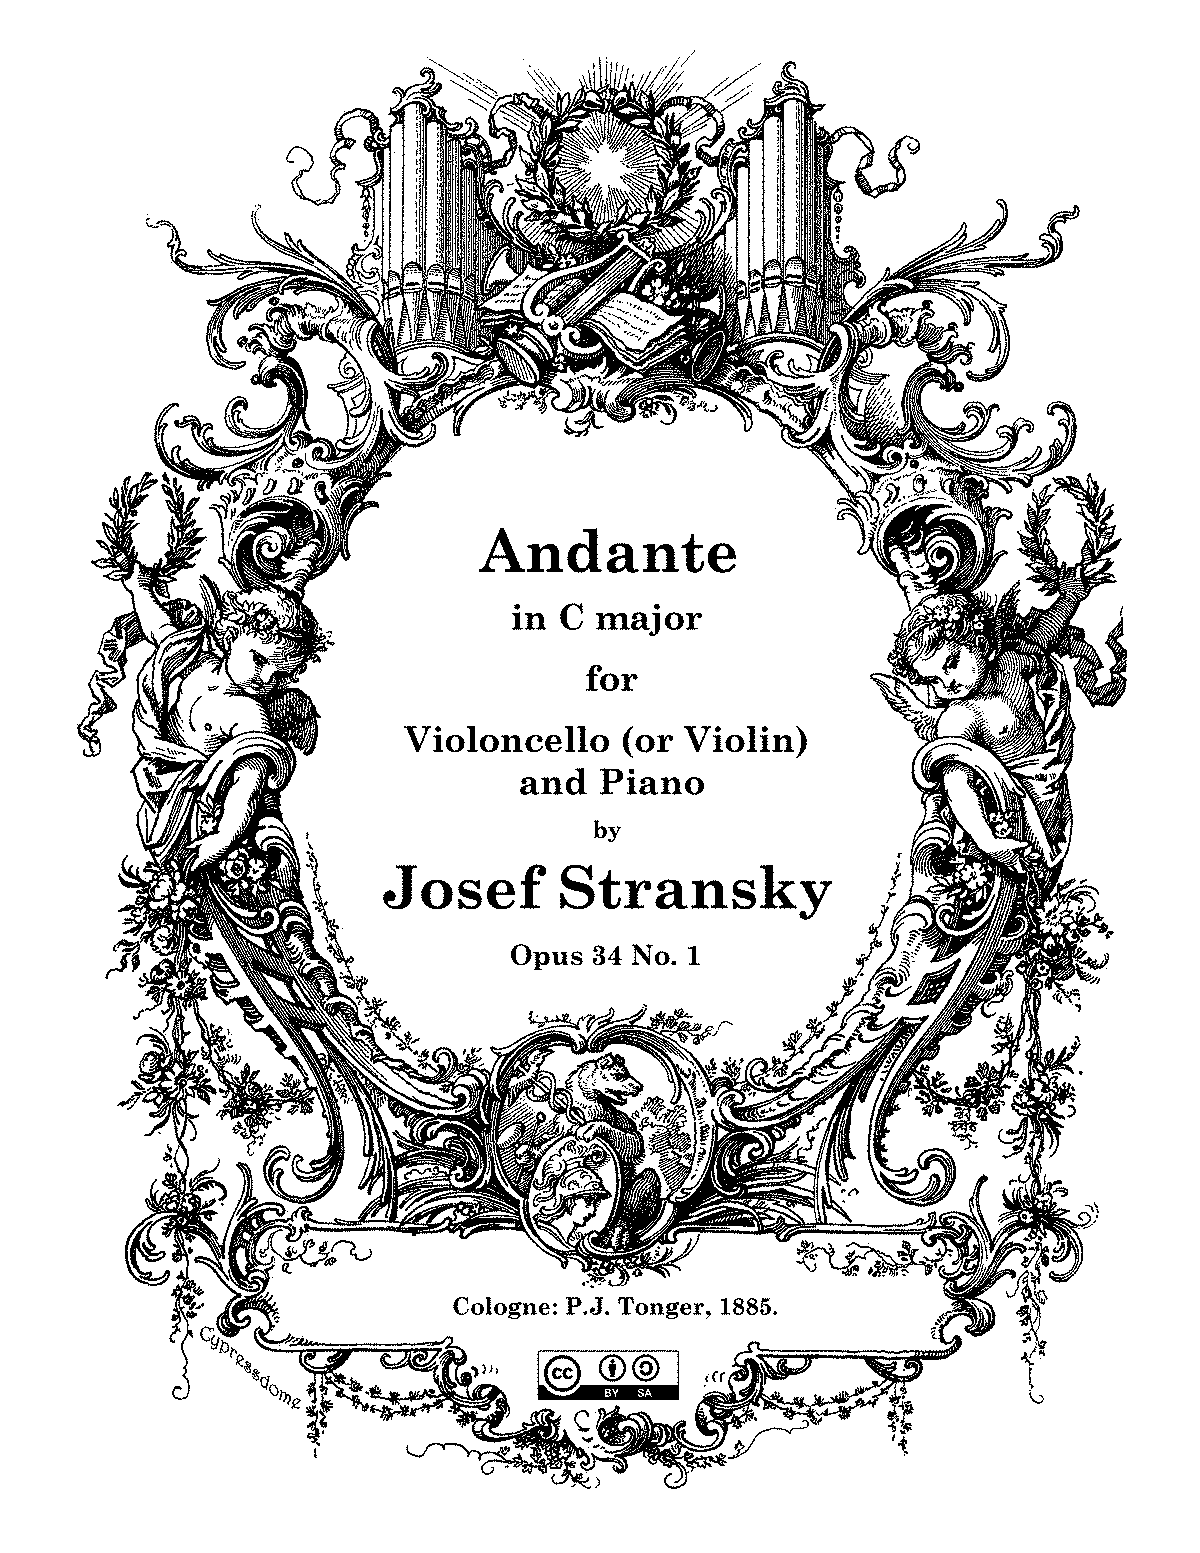 PMLP206032-JStransky Andante in C major, Op. 34 No. 1.pdf